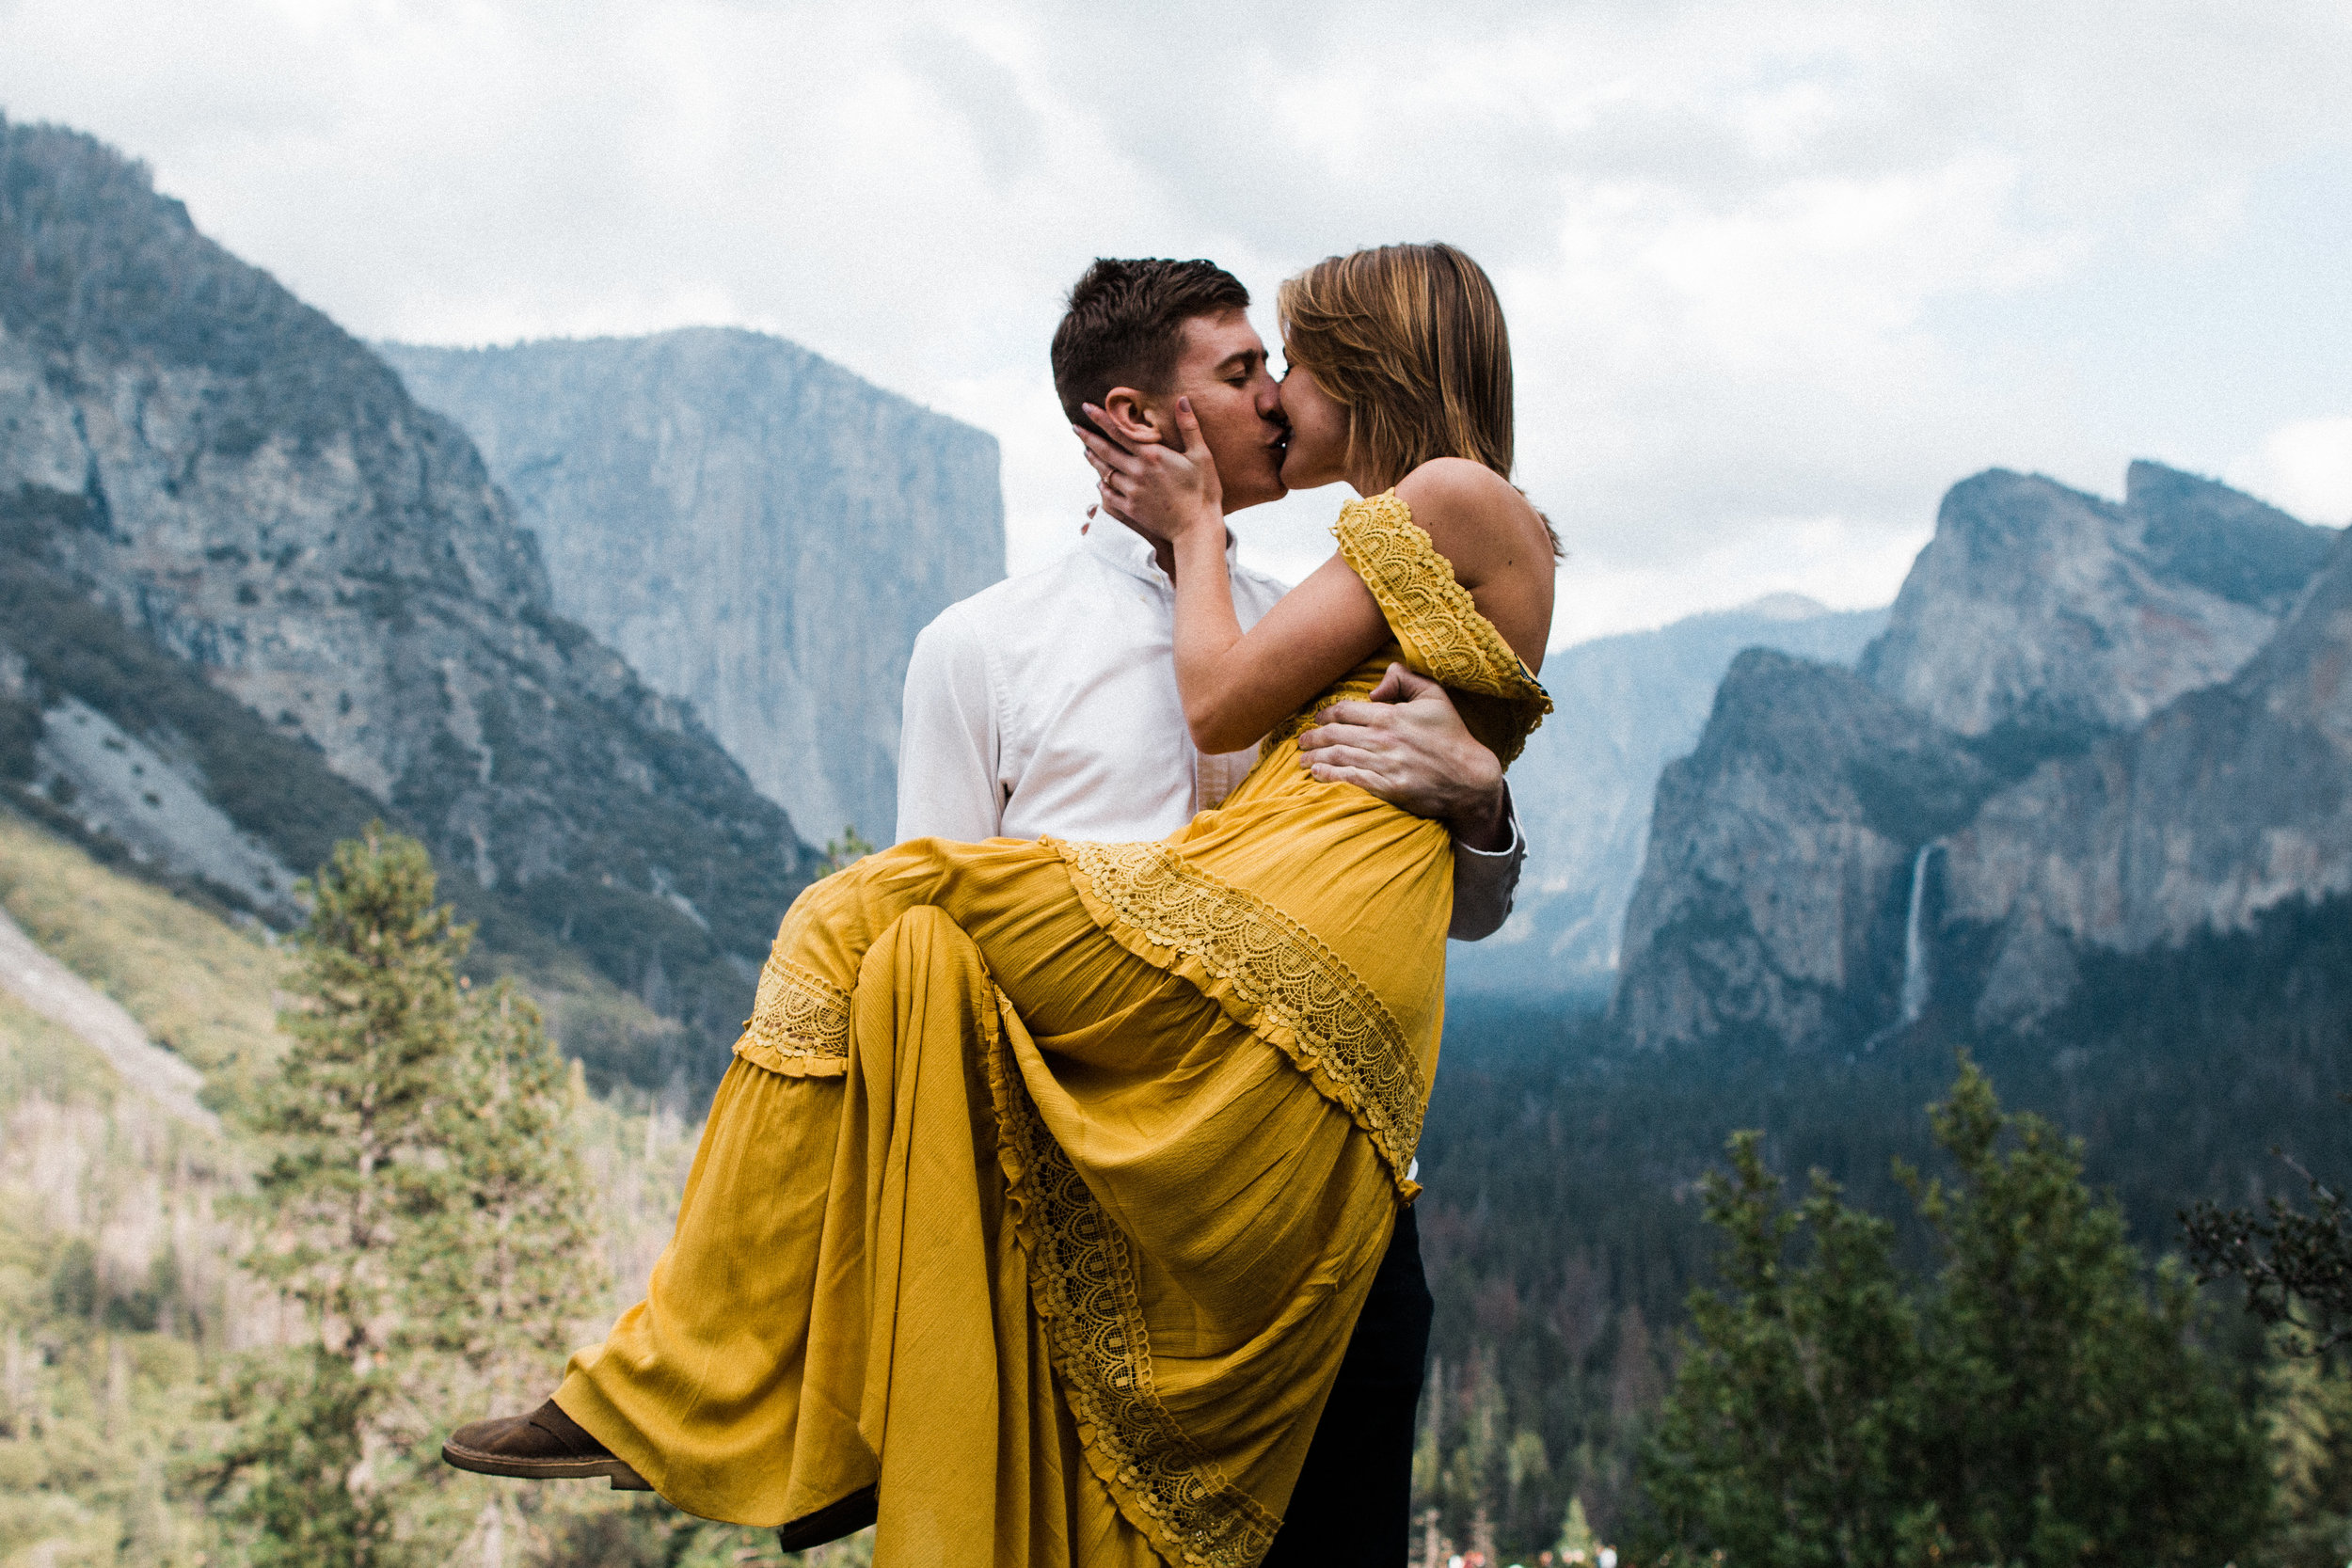 Yosemite engagement | Tunnel view engagement photos